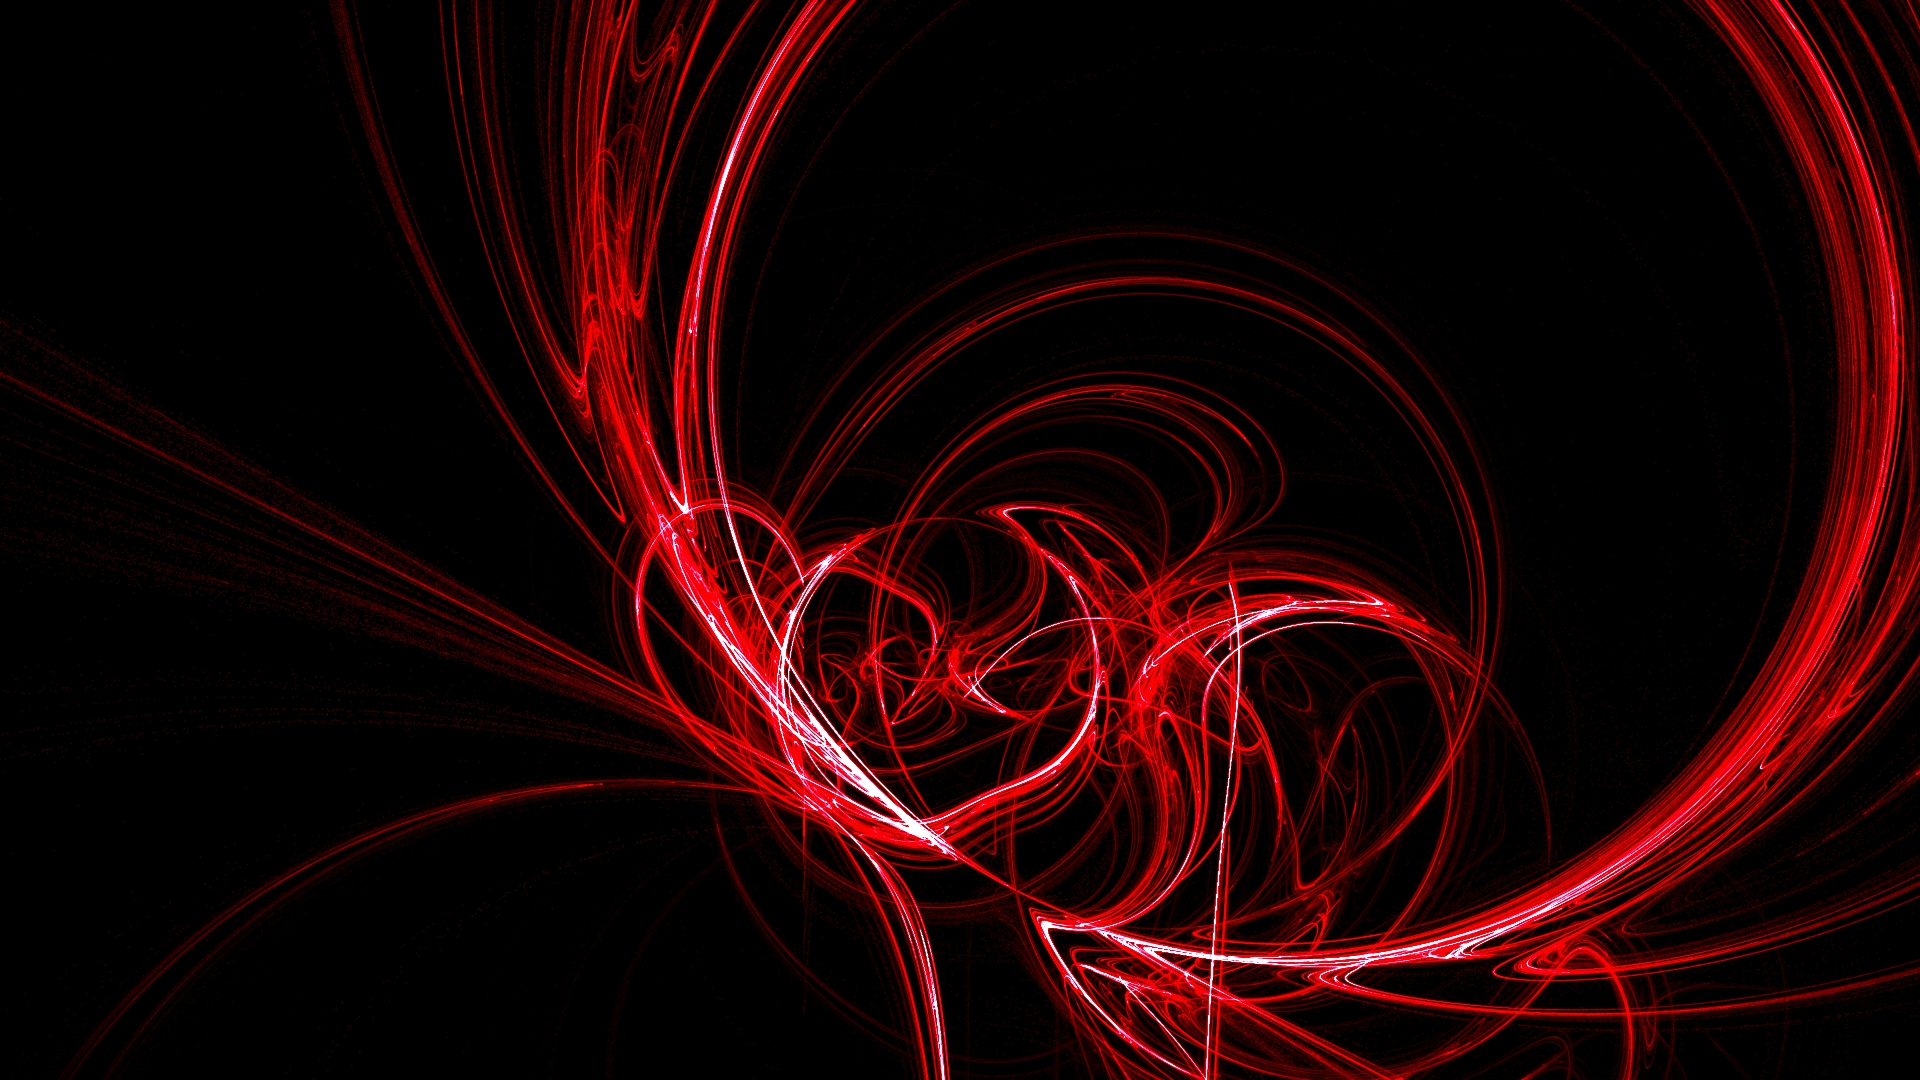 Red Abstract wallpaper   689020 1920x1080